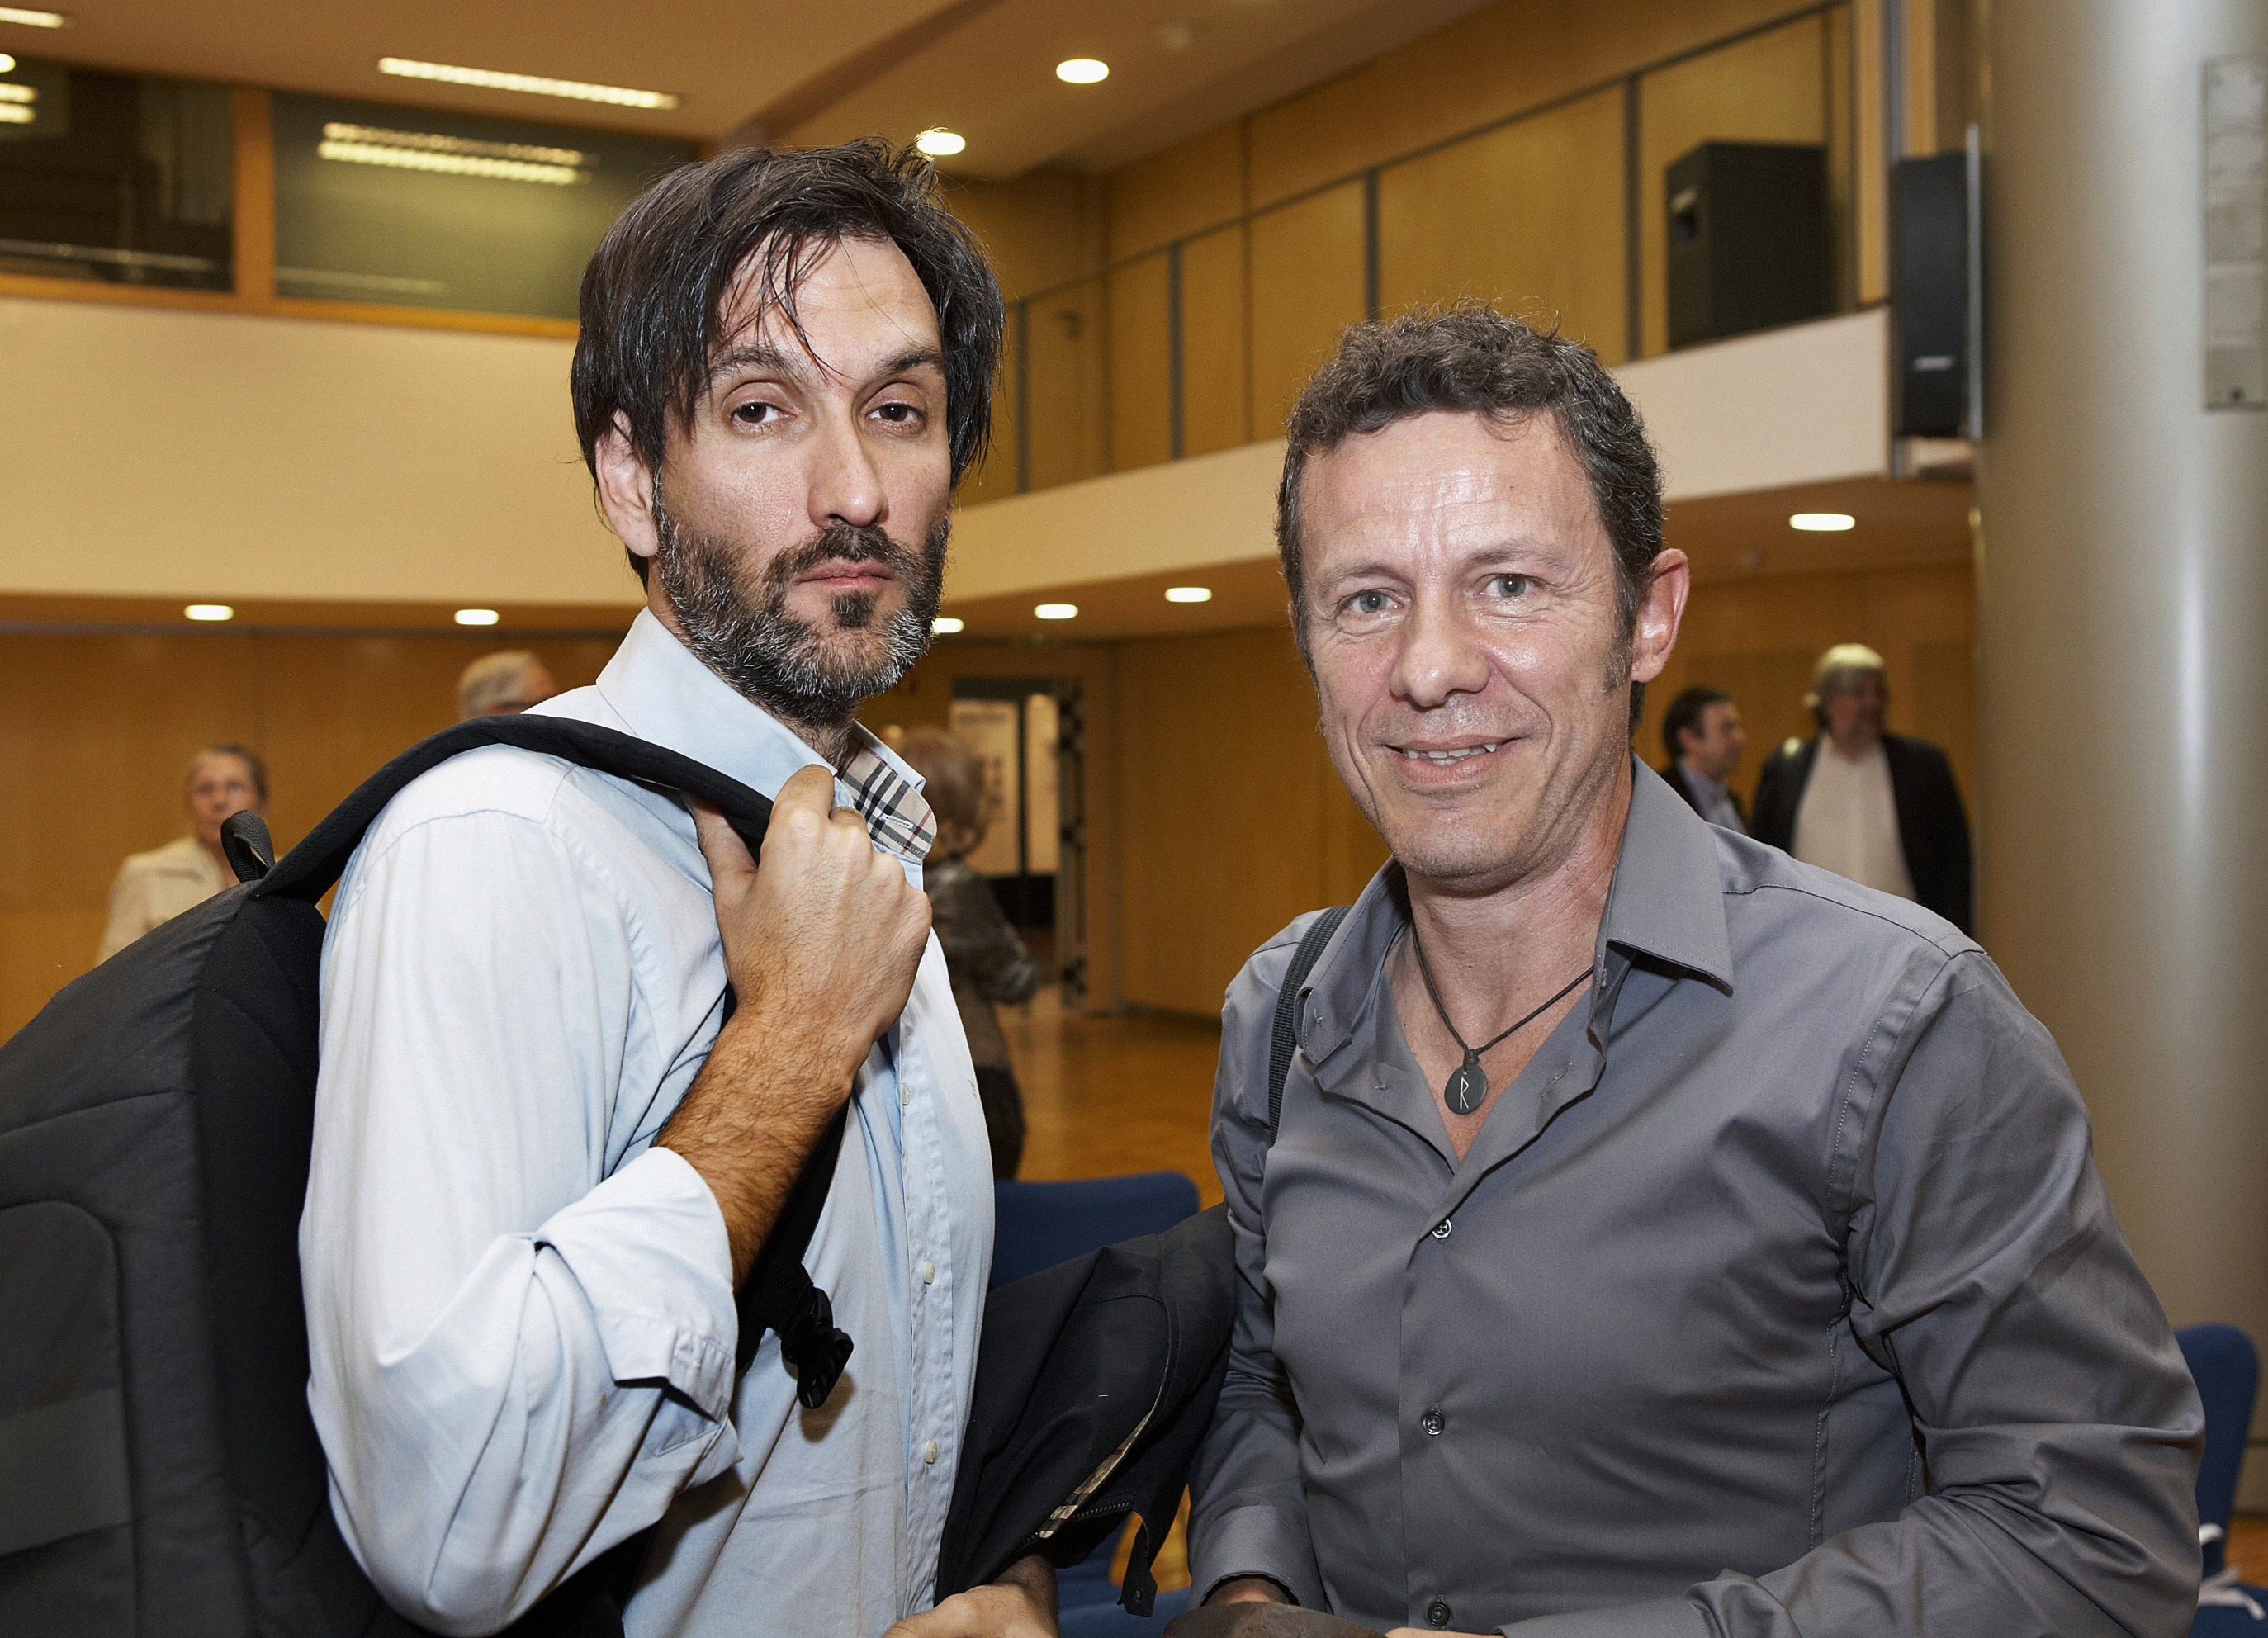 "A handout picture obtained on December 11, 2013 shows Spanish freelance photographer Ricardo Garcia Vilanova (L) and El Mundo daily newspaper correspondent Javier Espinosa during the XI Miguel Gil Moreno Journalism Award held at the Bertelsmann headquarters in Barcelona on May 24, 2012. The two journalists taken hostage by an Al-Qaeda-linked group last year have been freed, the Spanish daily El Mundo reported on March 30, 2014.     AFP PHOTO/ PRH/ JOAN BORRAS == RESTRICTED TO EDITORIAL USE - MANDATORY CREDIT ""AFP PHOTO/ PRH/ JOAN BORRAS "" - NO MARKETING NO ADVERTISING CAMPAIGNS - DISTRIBUTED AS A SERVICE TO CLIENTS =="